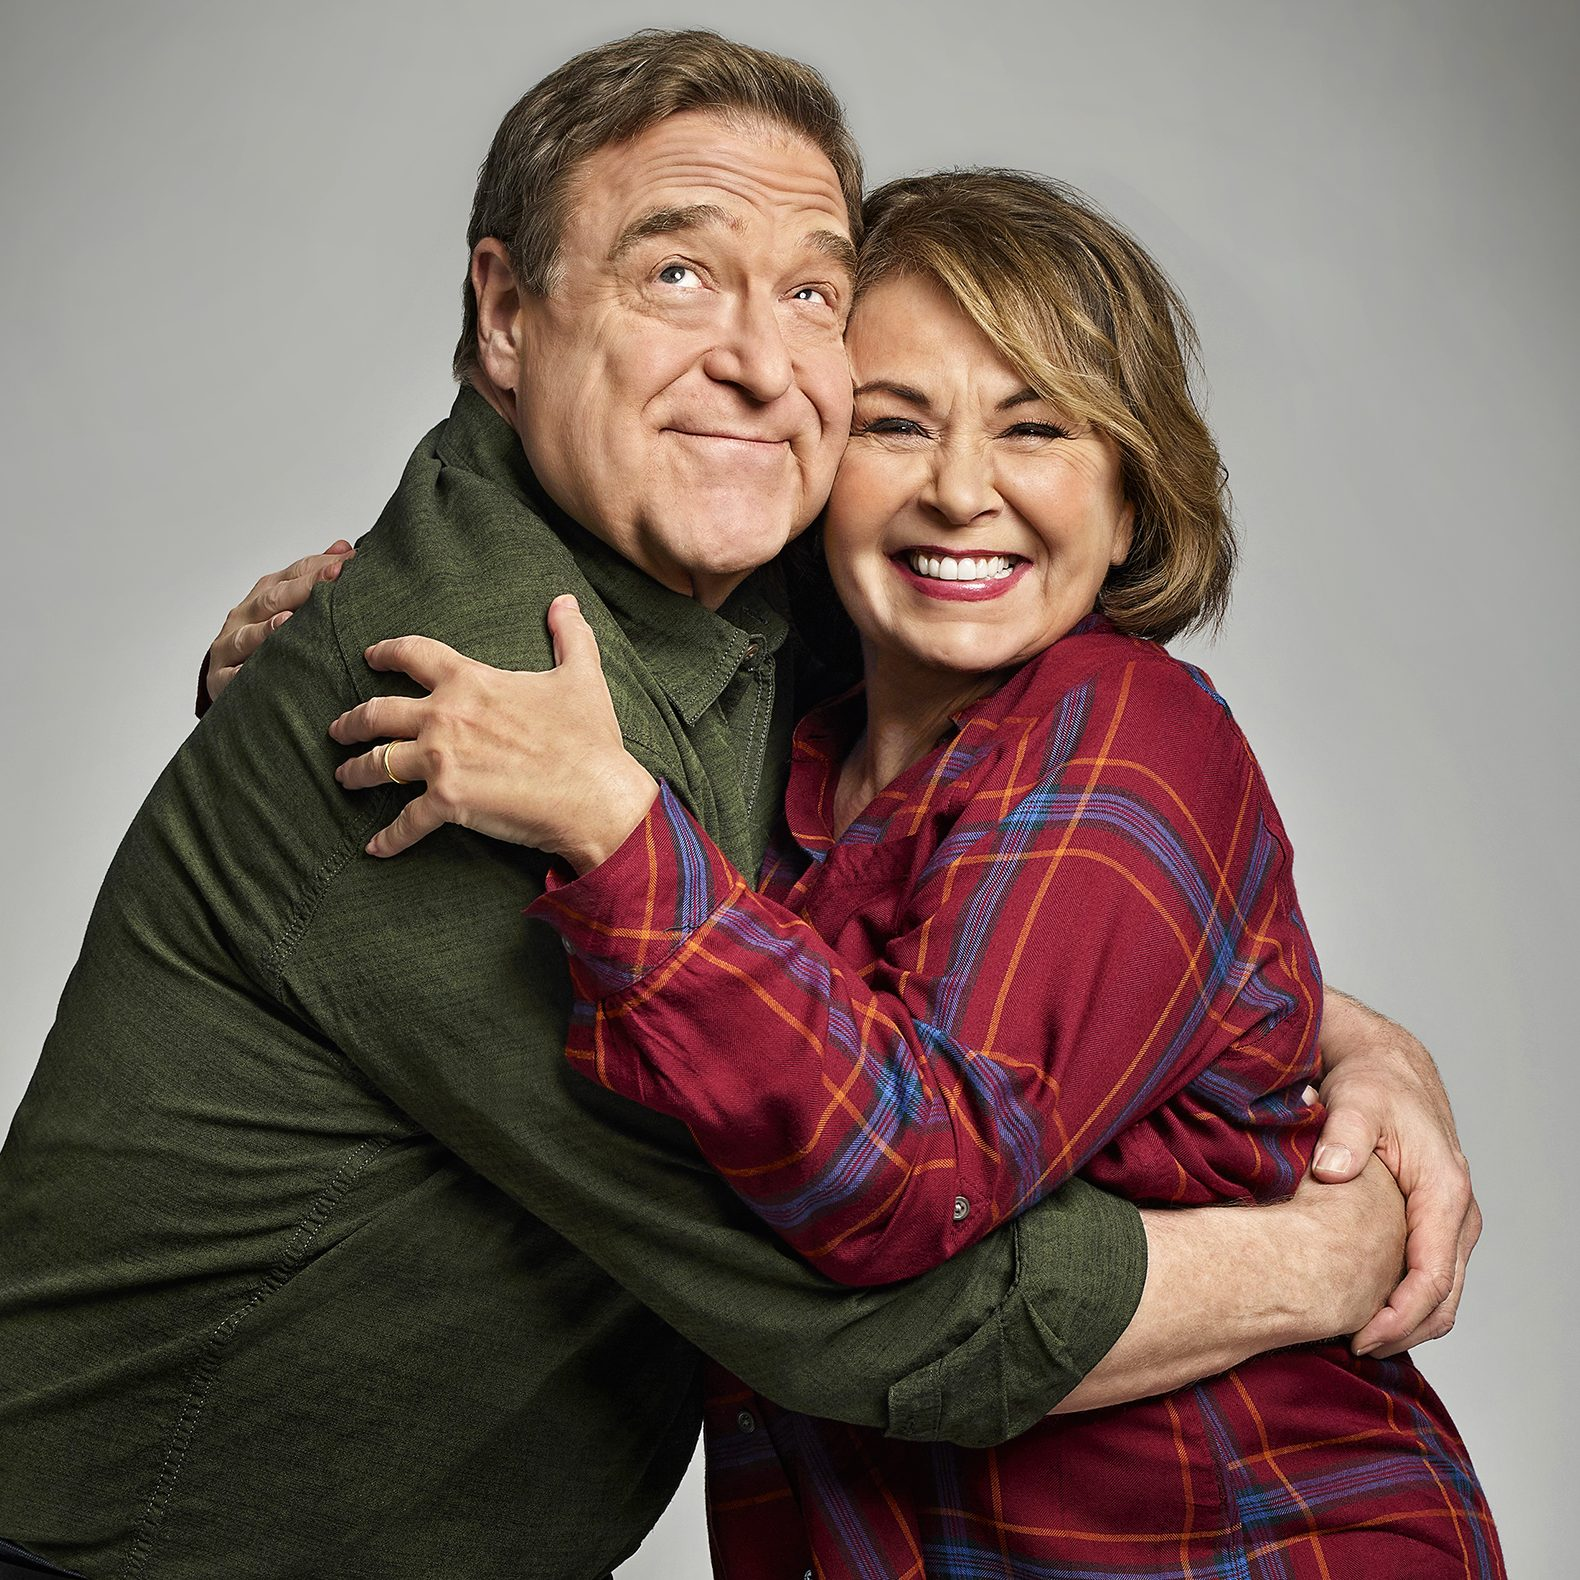 roseanne family tv back on e1599475119867 20 Popular TV Shows That Were Cancelled Due To Controversy